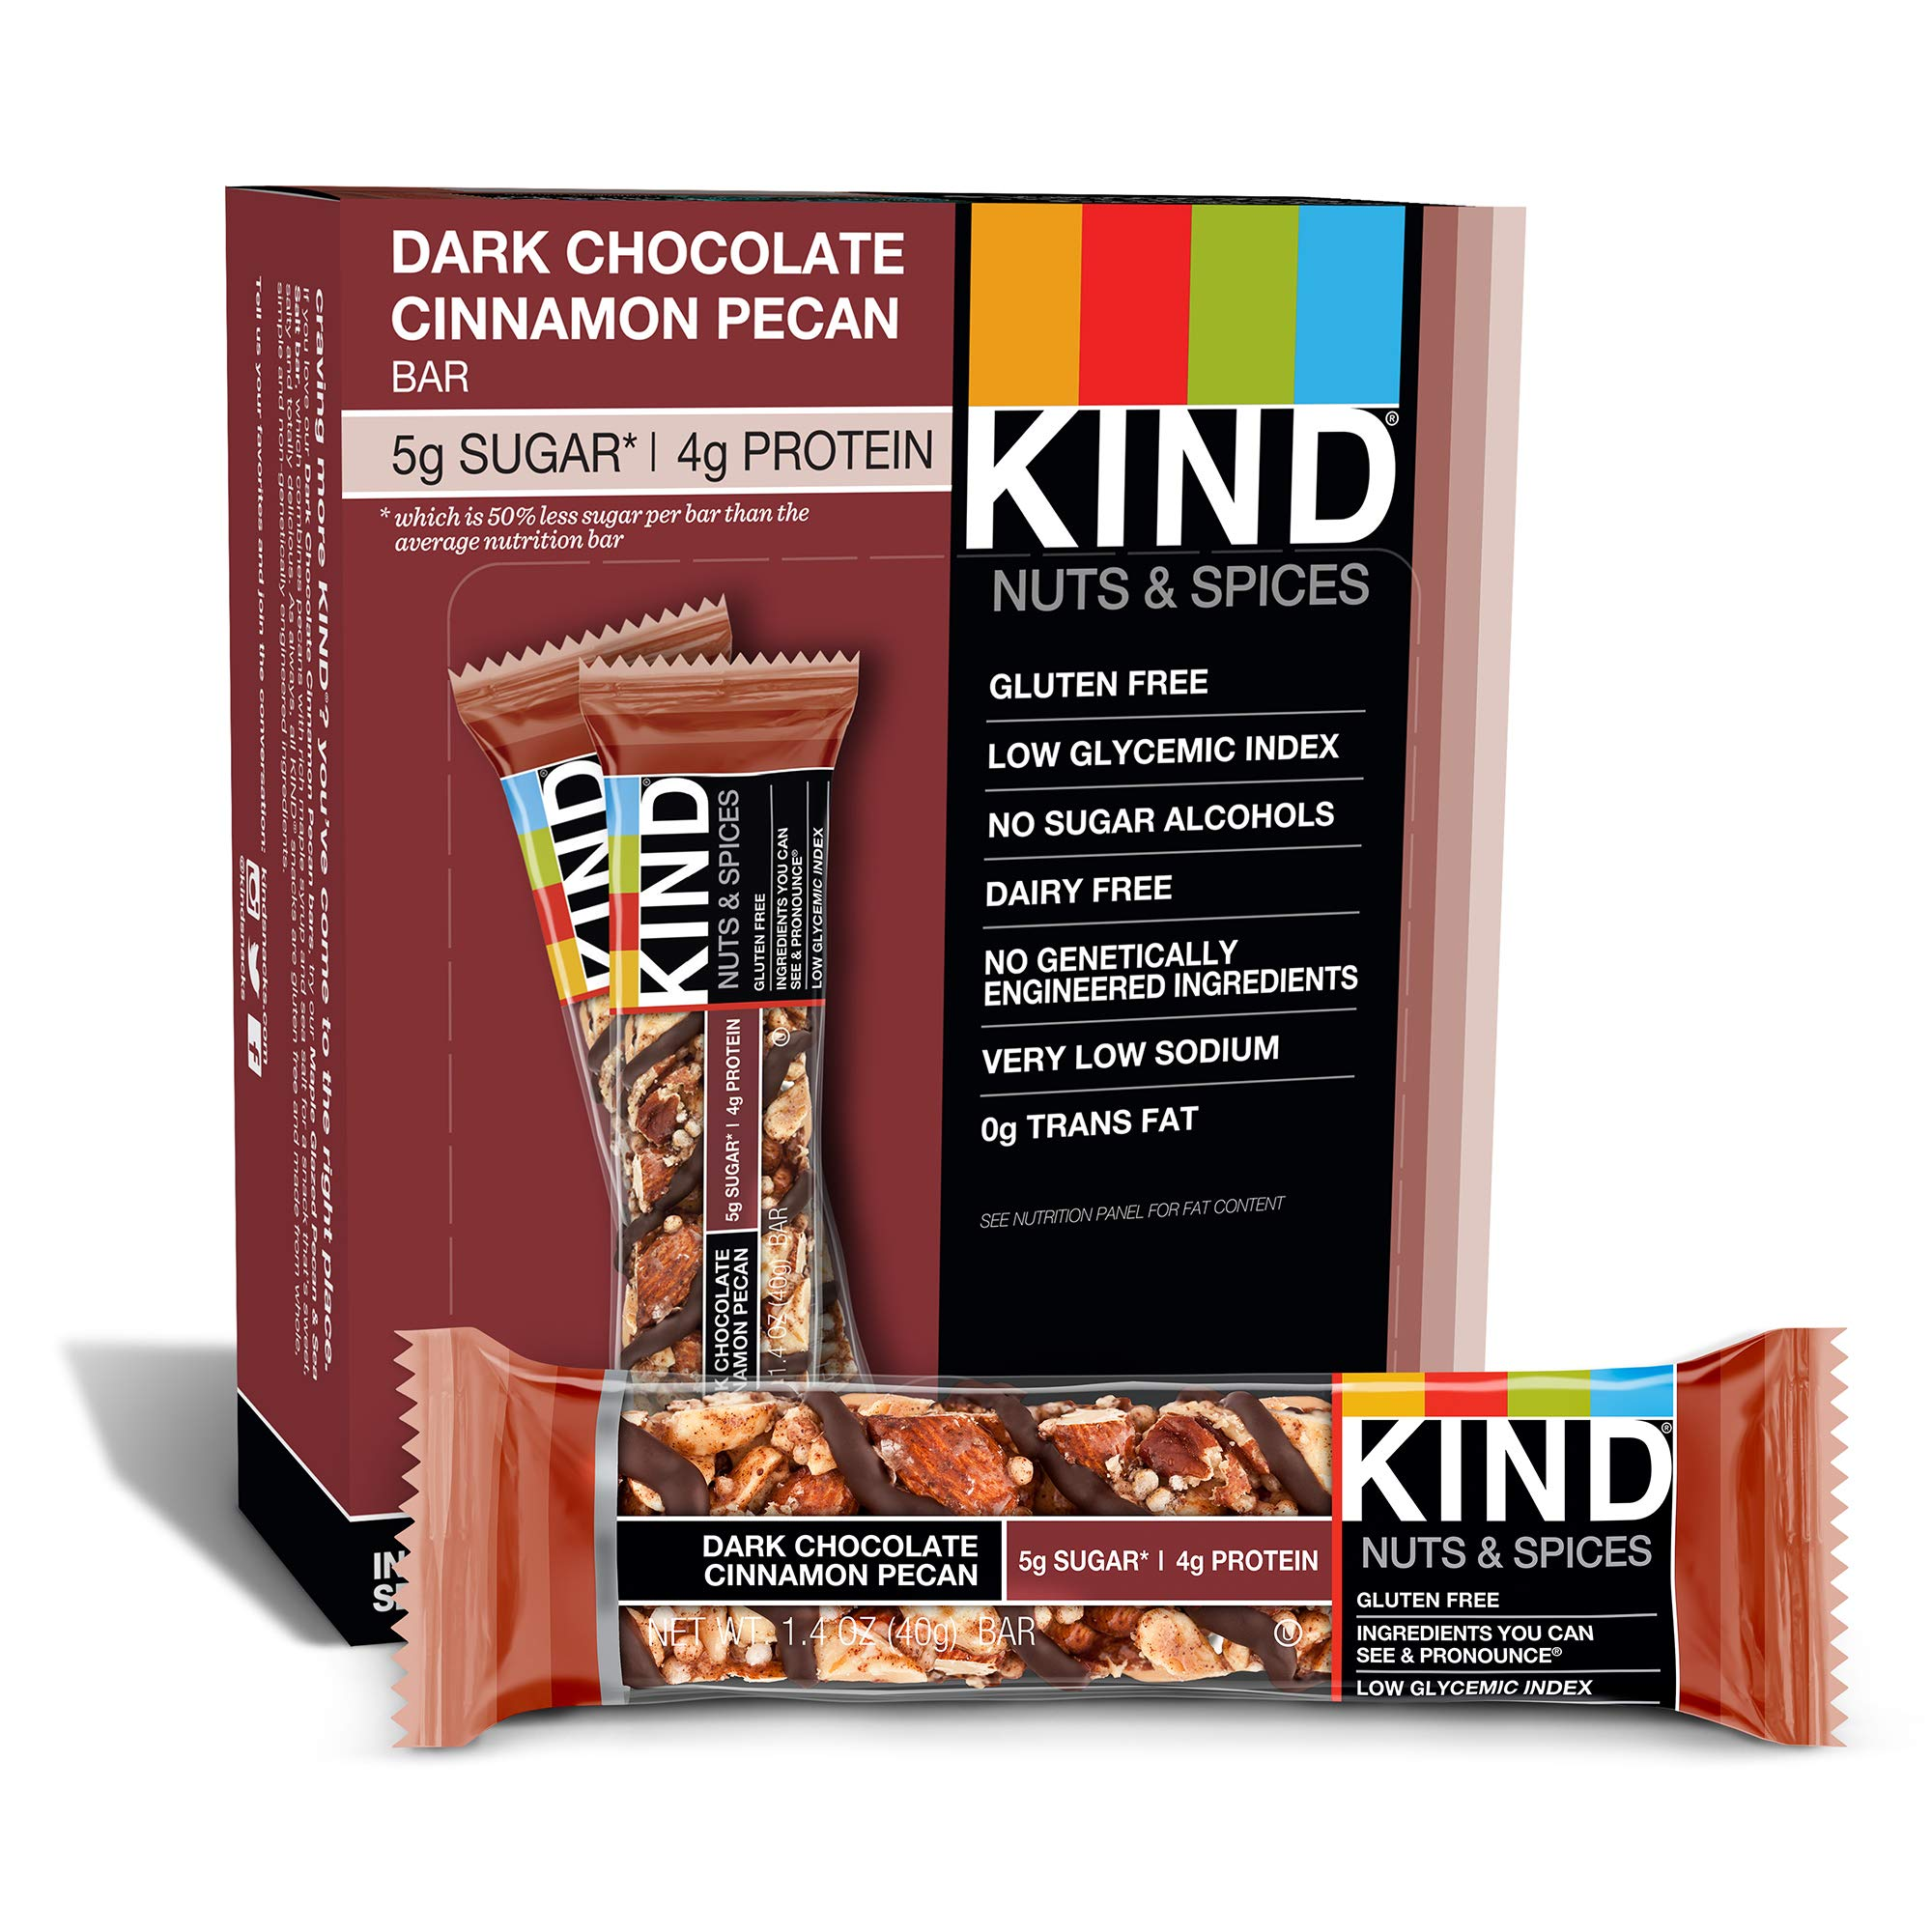 Kind Bars, Dark Chocolate Cinnamon Pecan, Gluten Free, Low Sugar, 1.4oz, Pack of 12